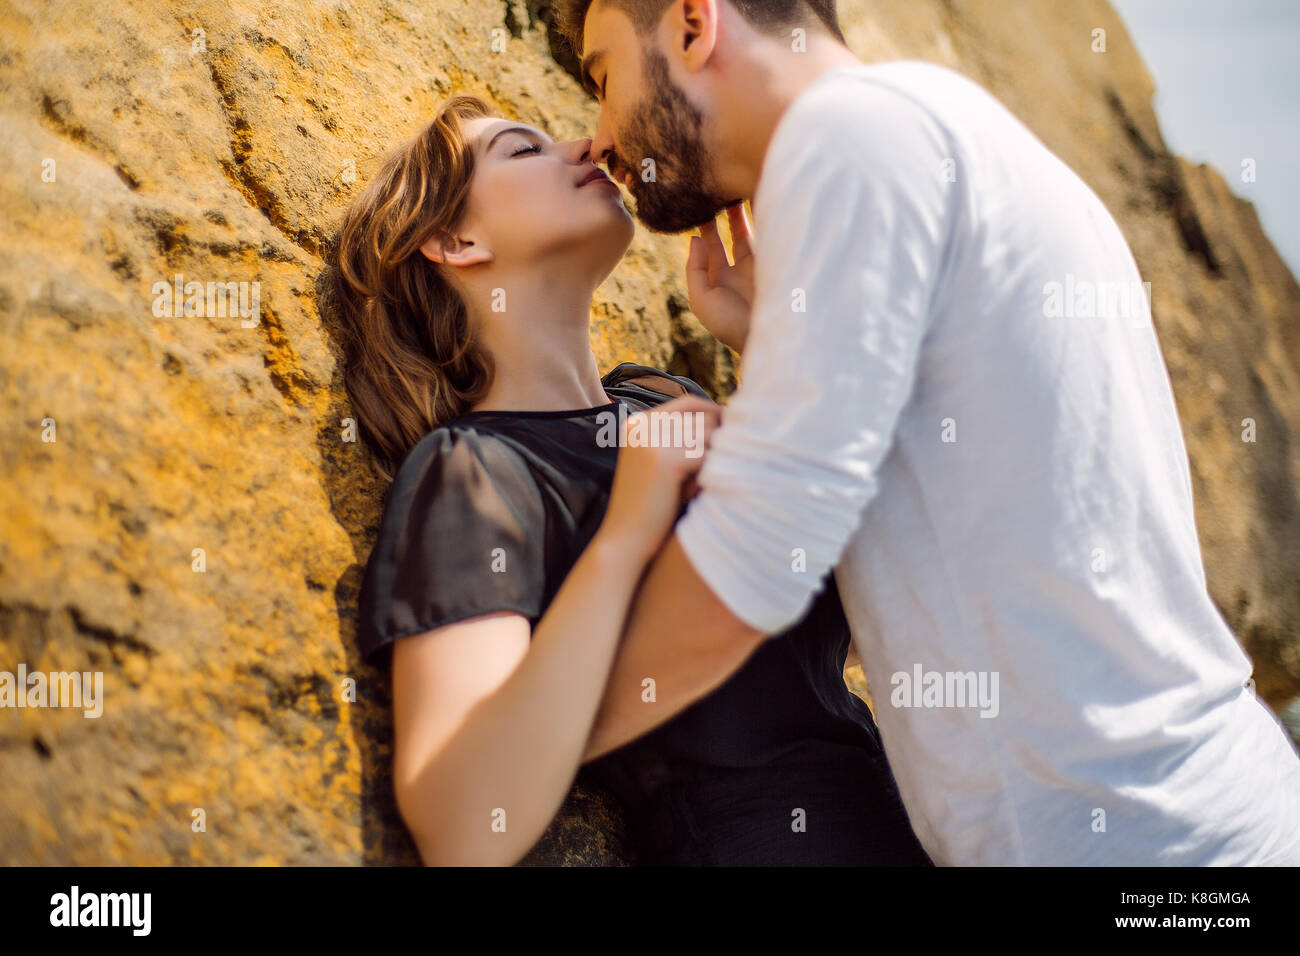 Couple kissing on rock Photo Stock